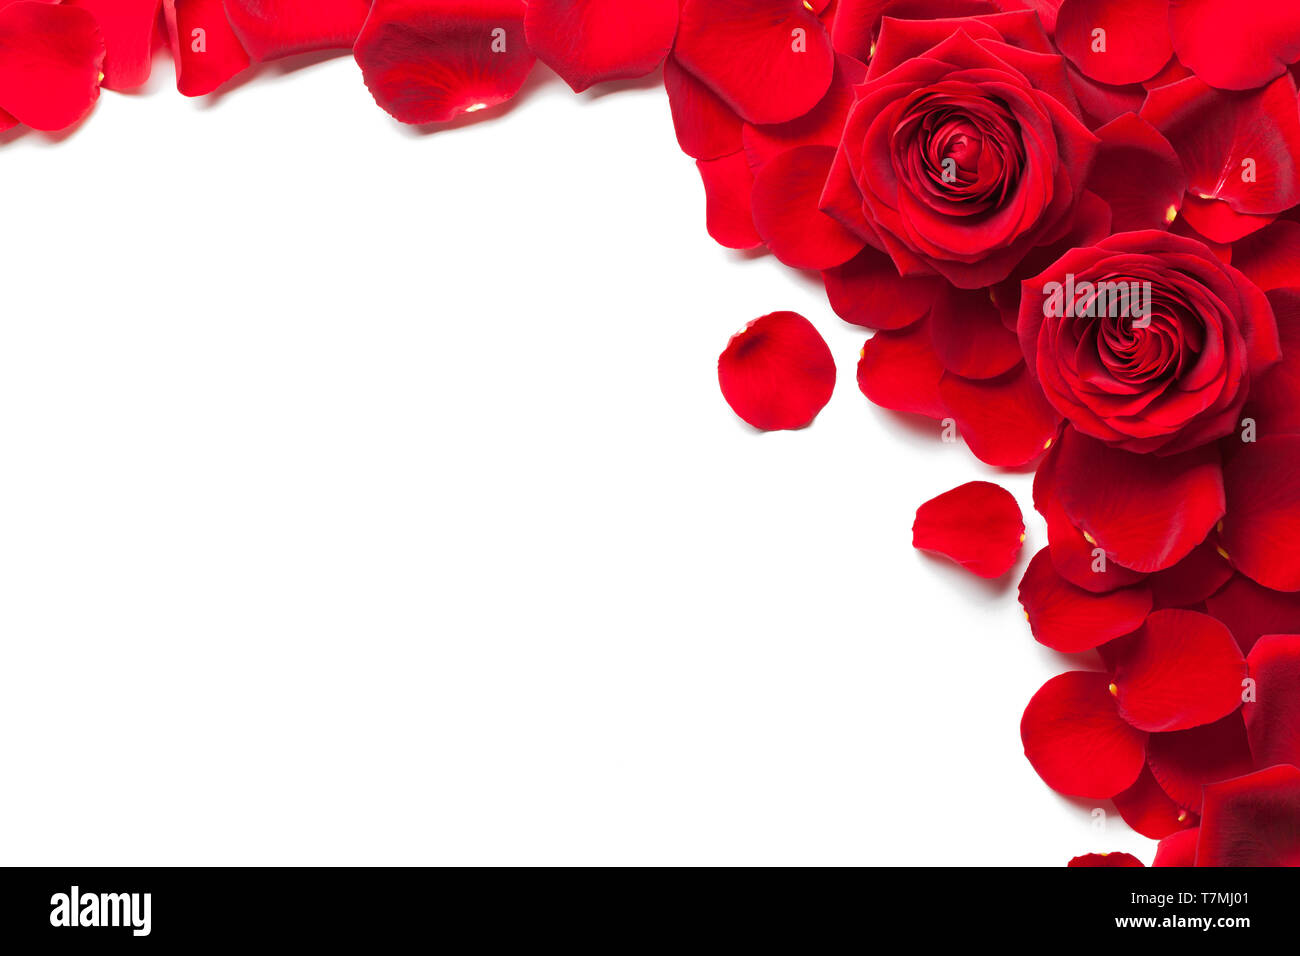 Red Roses And Rose Petals Isolated White Background Stock Photo